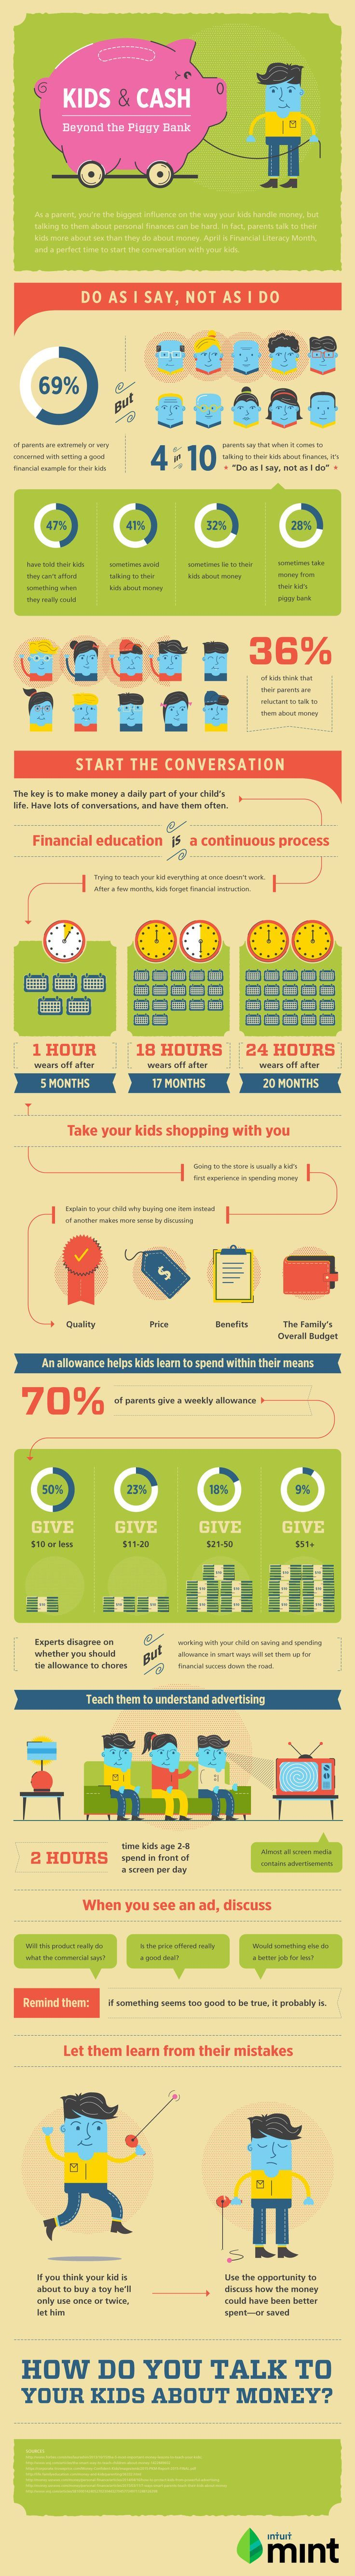 Kids and Cash: Beyond the Piggy Bank #infographic #Finance